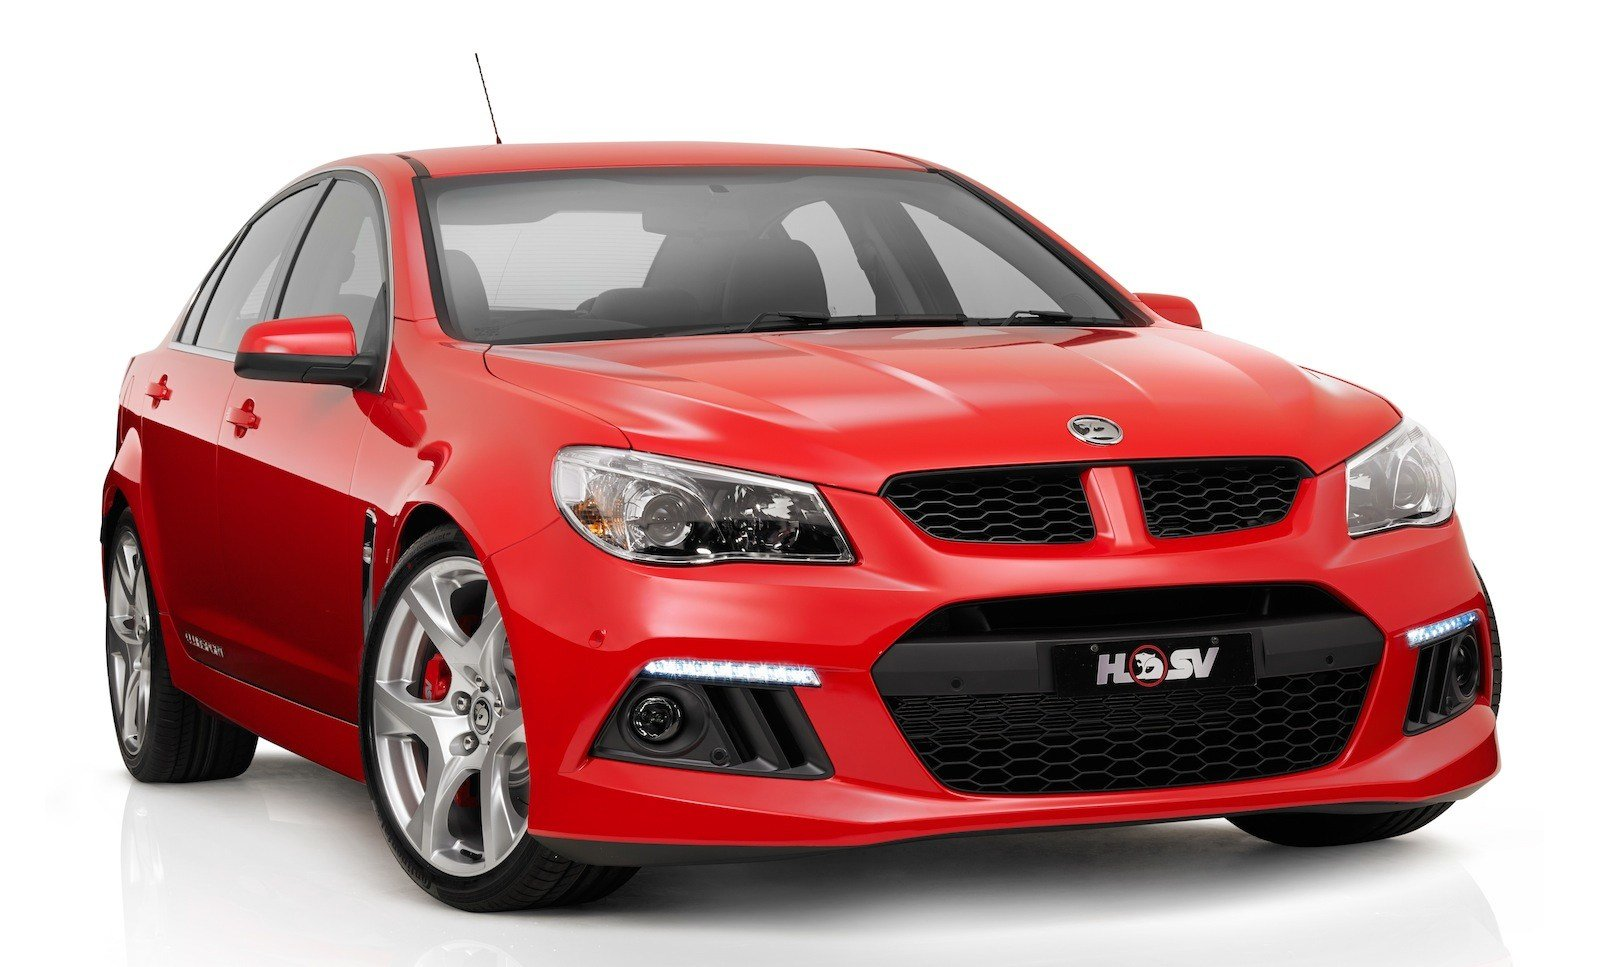 New Holden Performance Model Additions To Push Hsv Photos 1 Of 3 On This Month